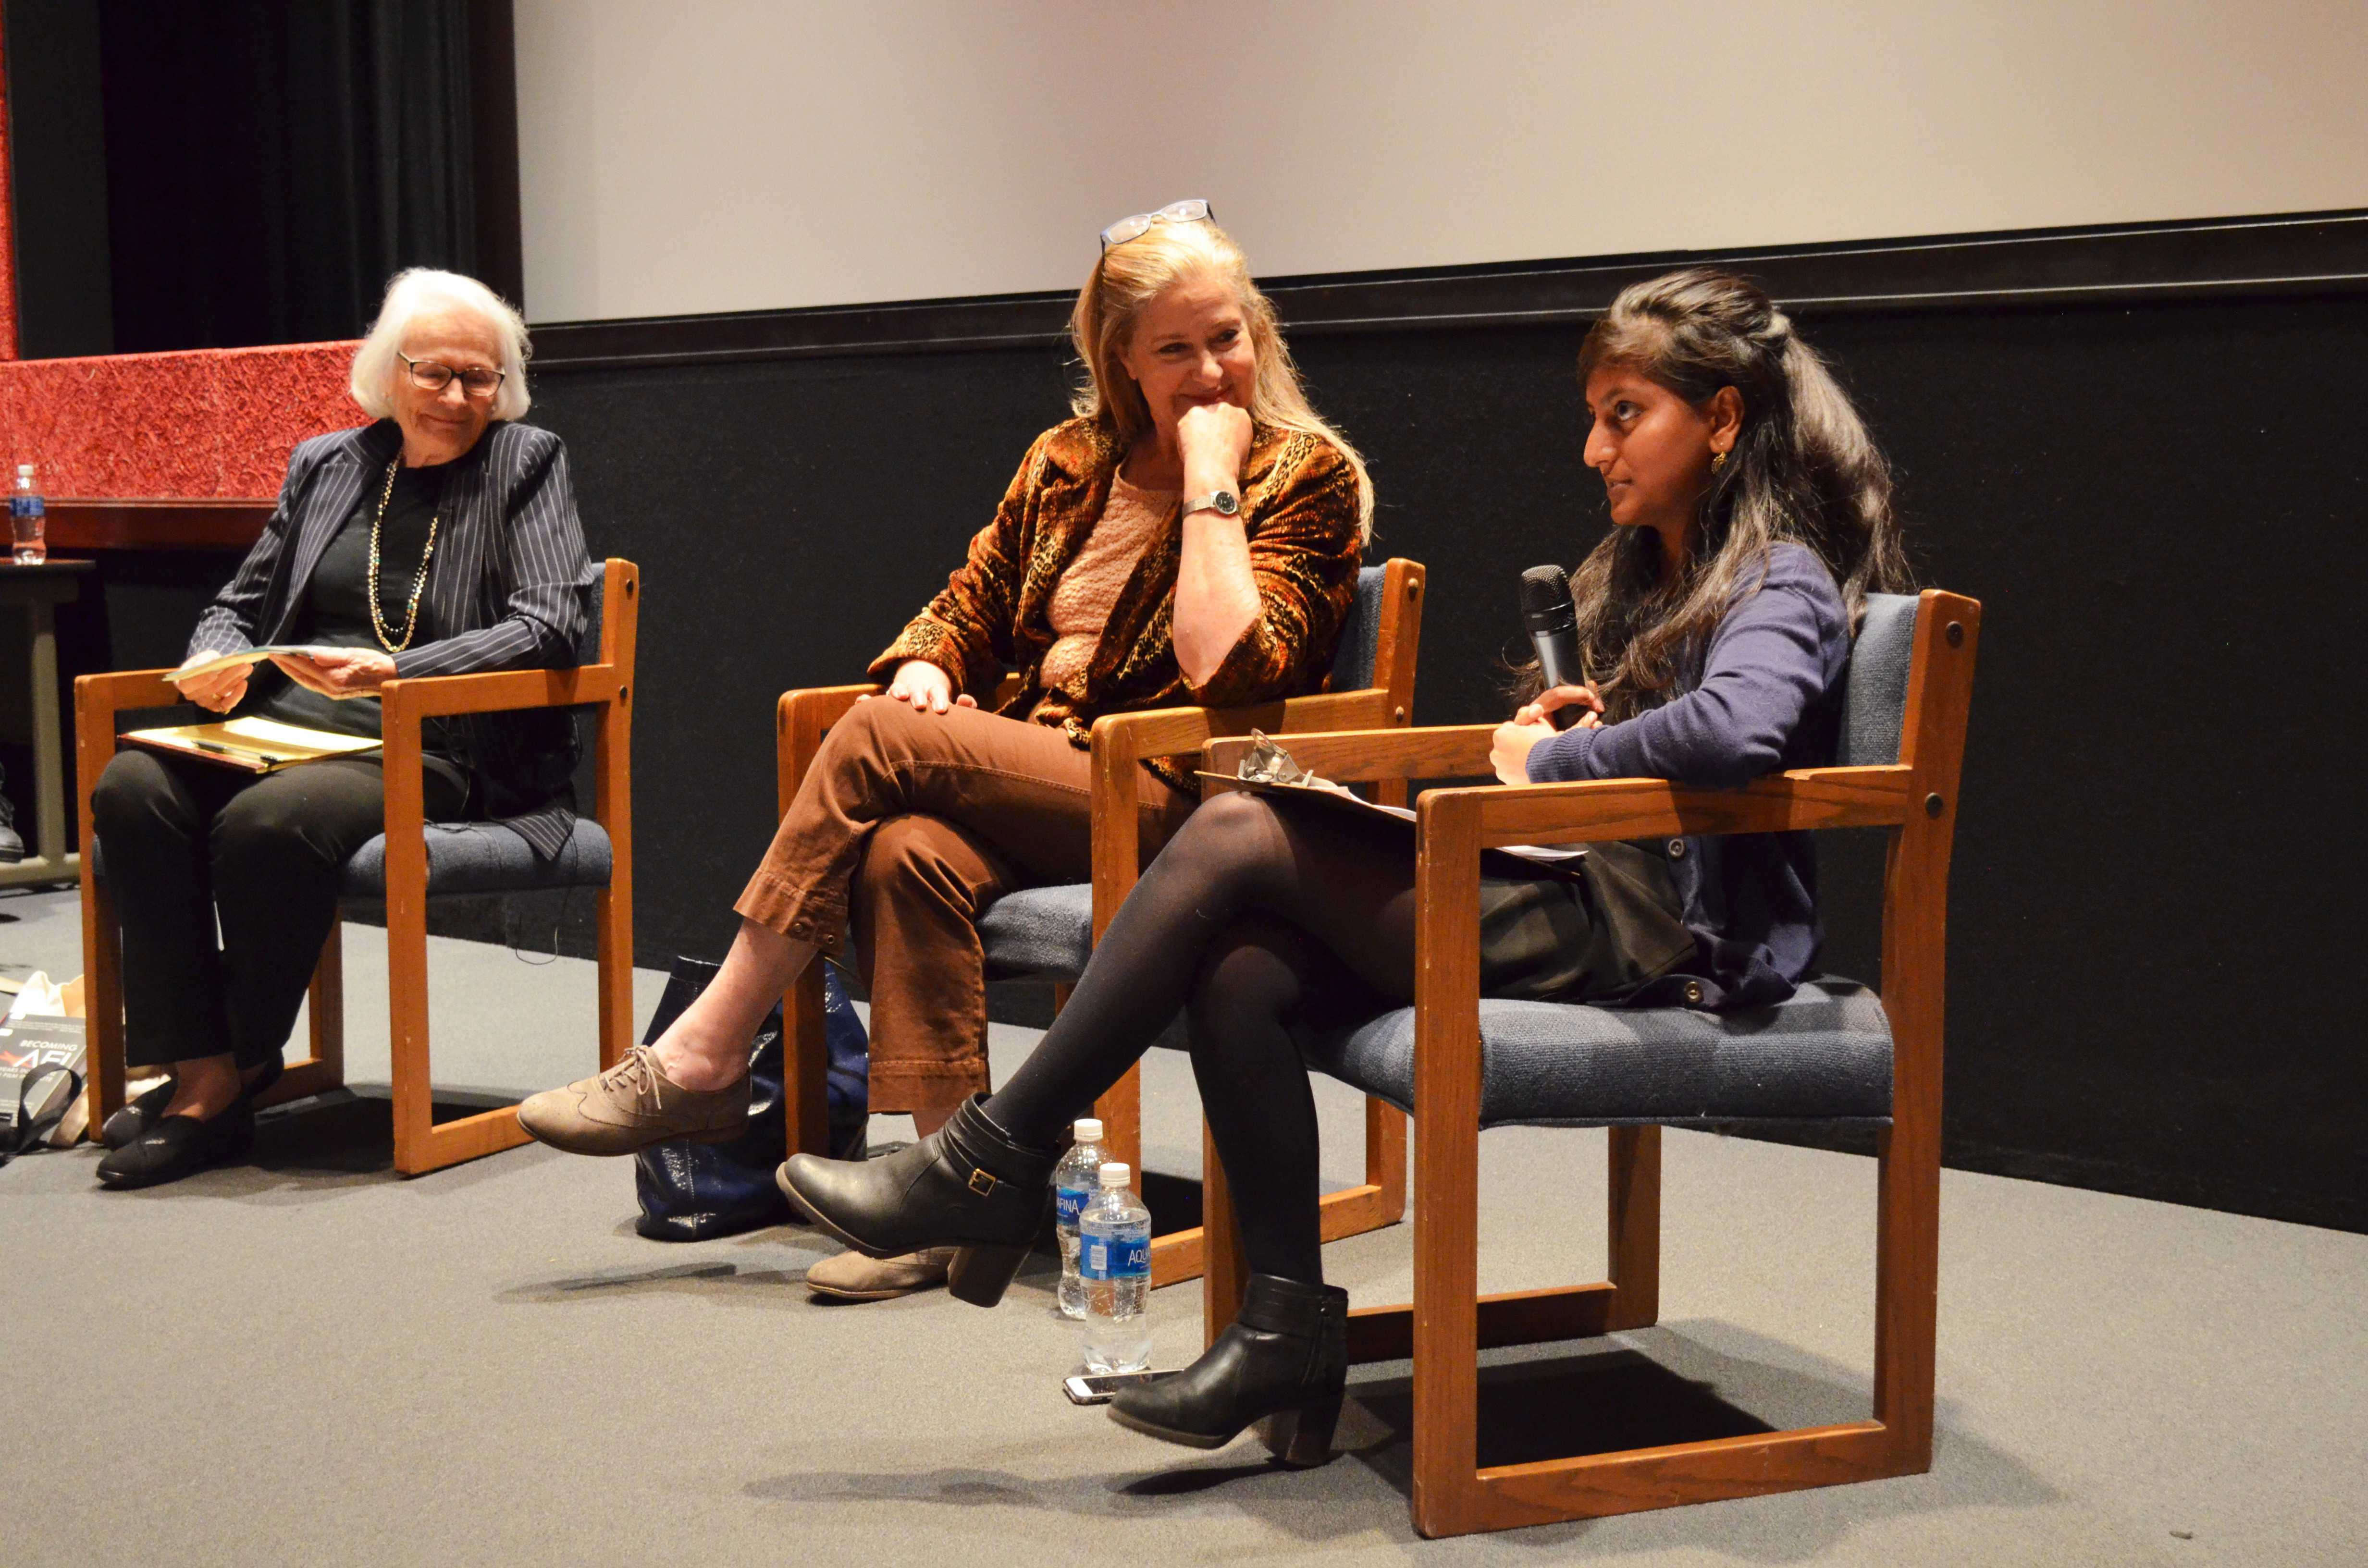 Former AFI President and CEO Jean Picker Firstenberg and filmmaker Lynn Roth look over to CSUN alumni Revati Dhomse as she shares her insight on making it in the entertainment industry. Photo credit: Tamara Syed